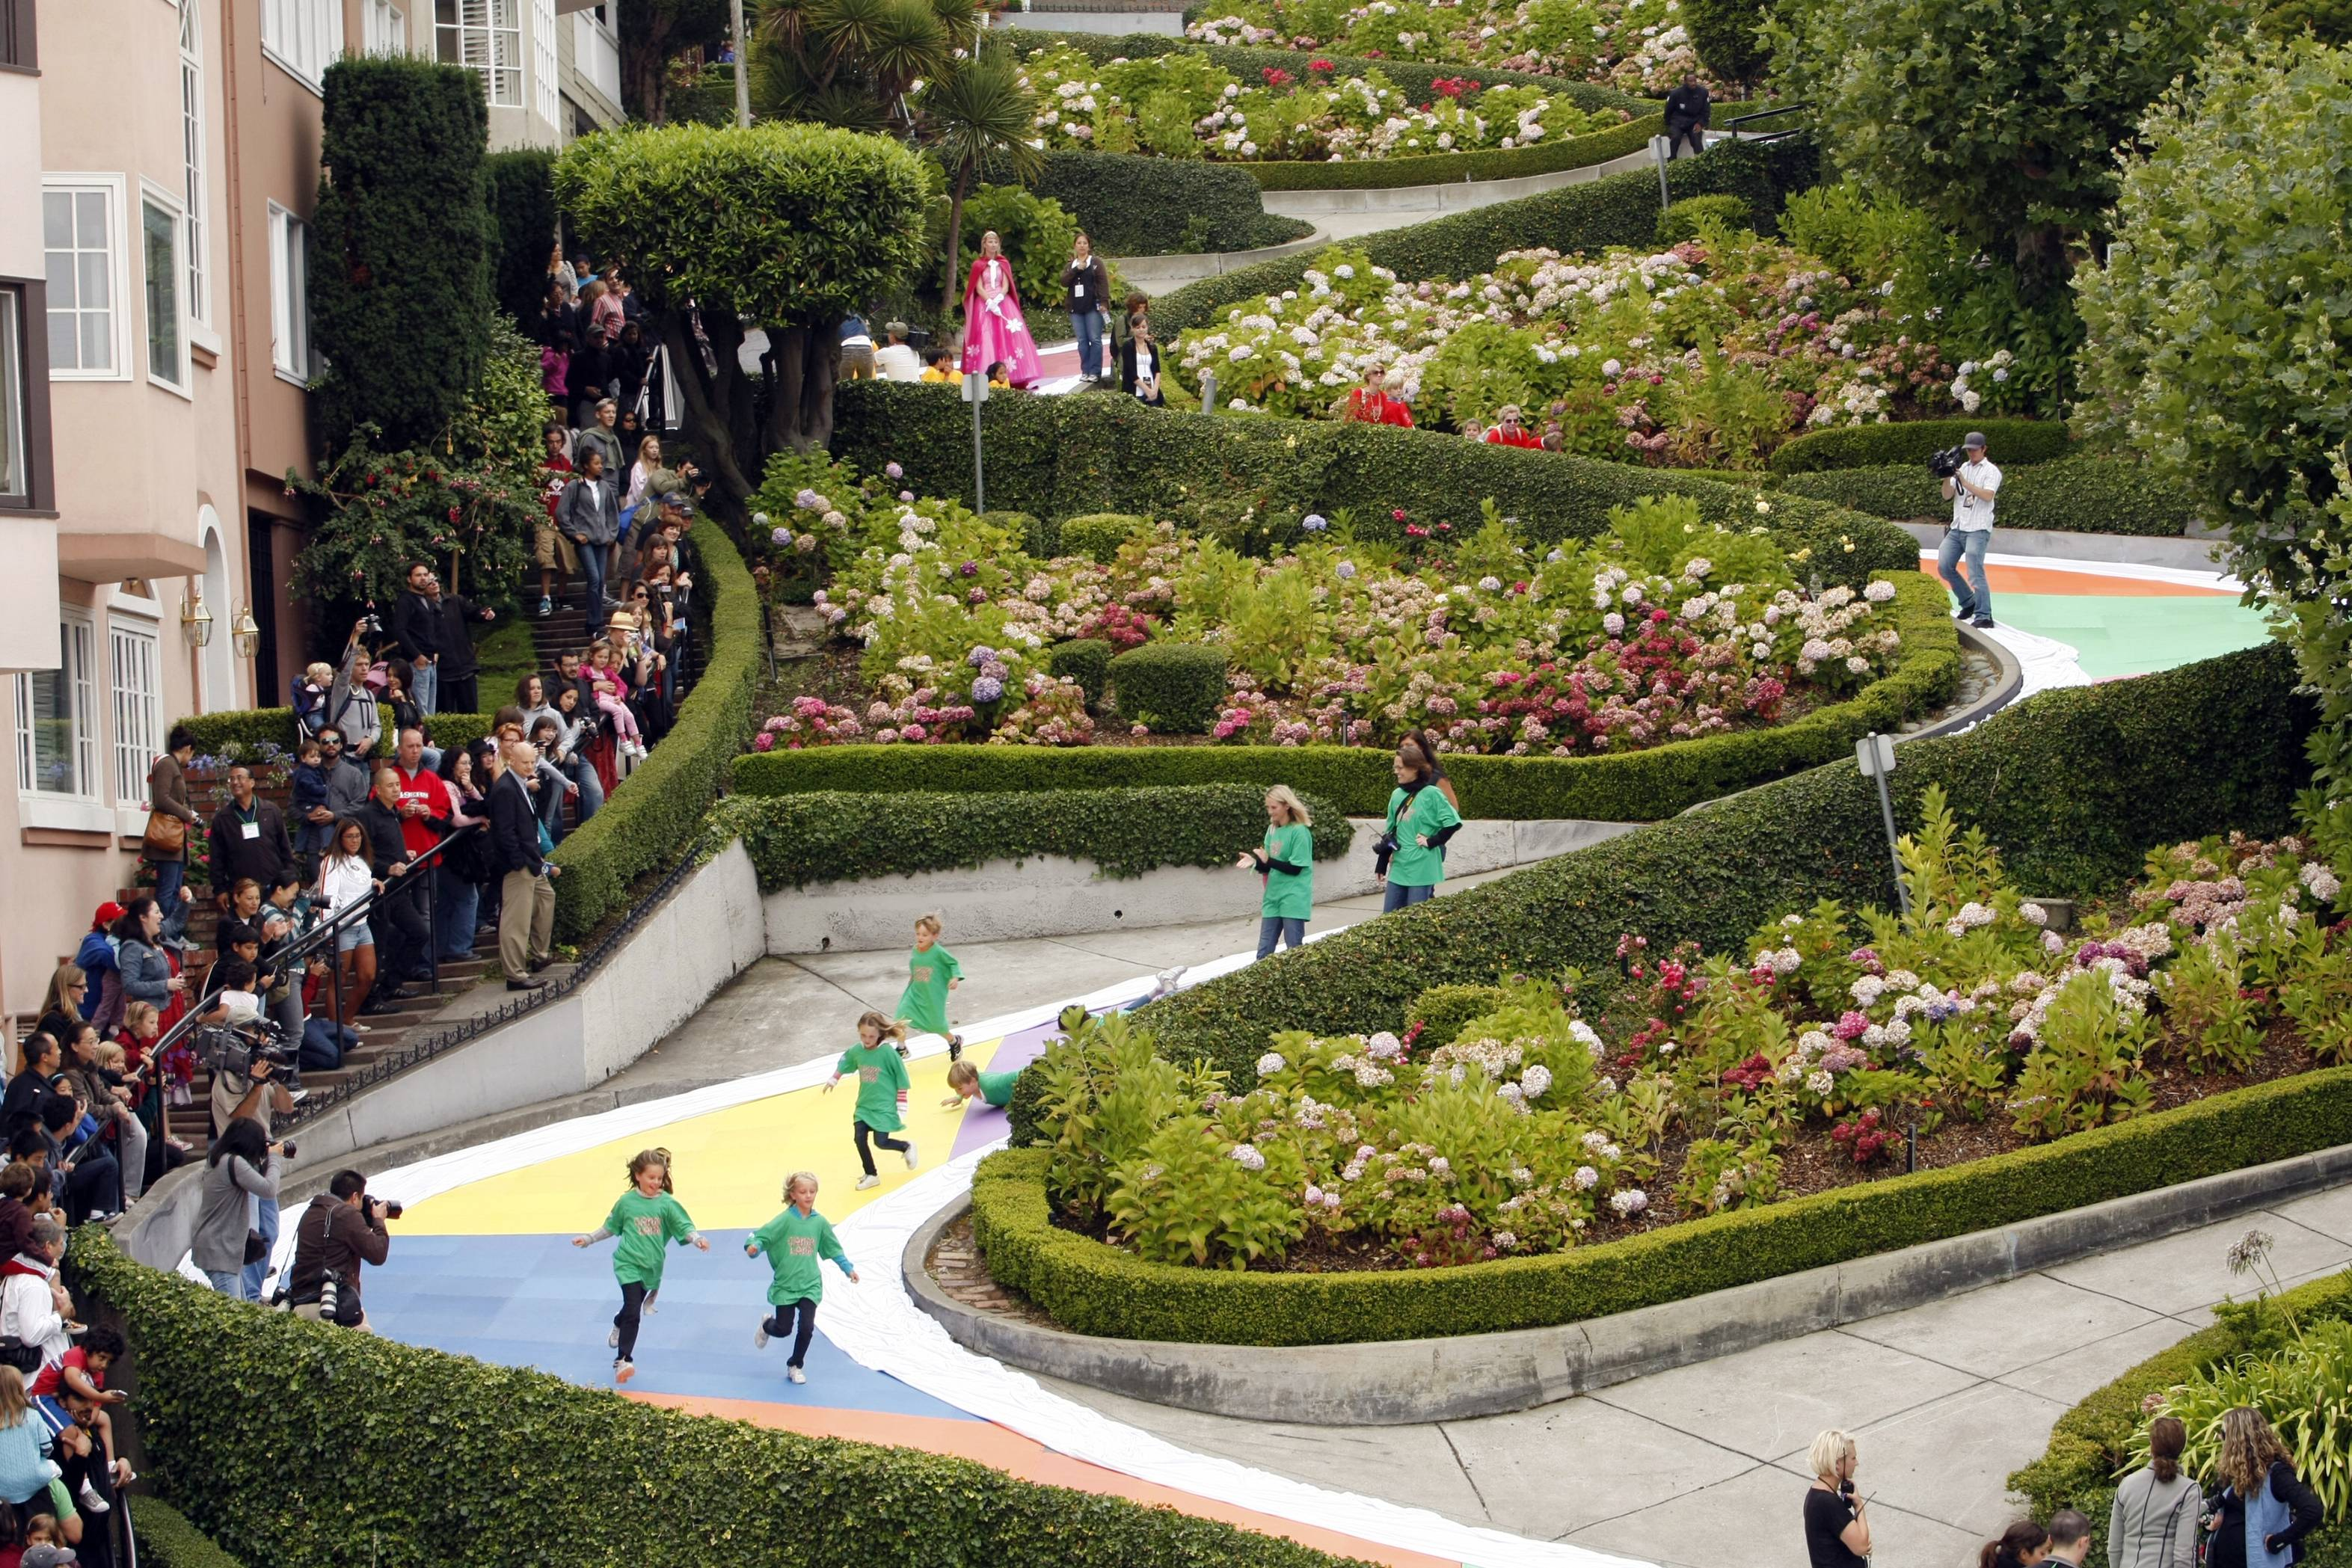 Children run down Lombard Street in San Francisco, which was transformed for the day into a gigantic Candy Land board game to commemorate the game's 60th anniversary.